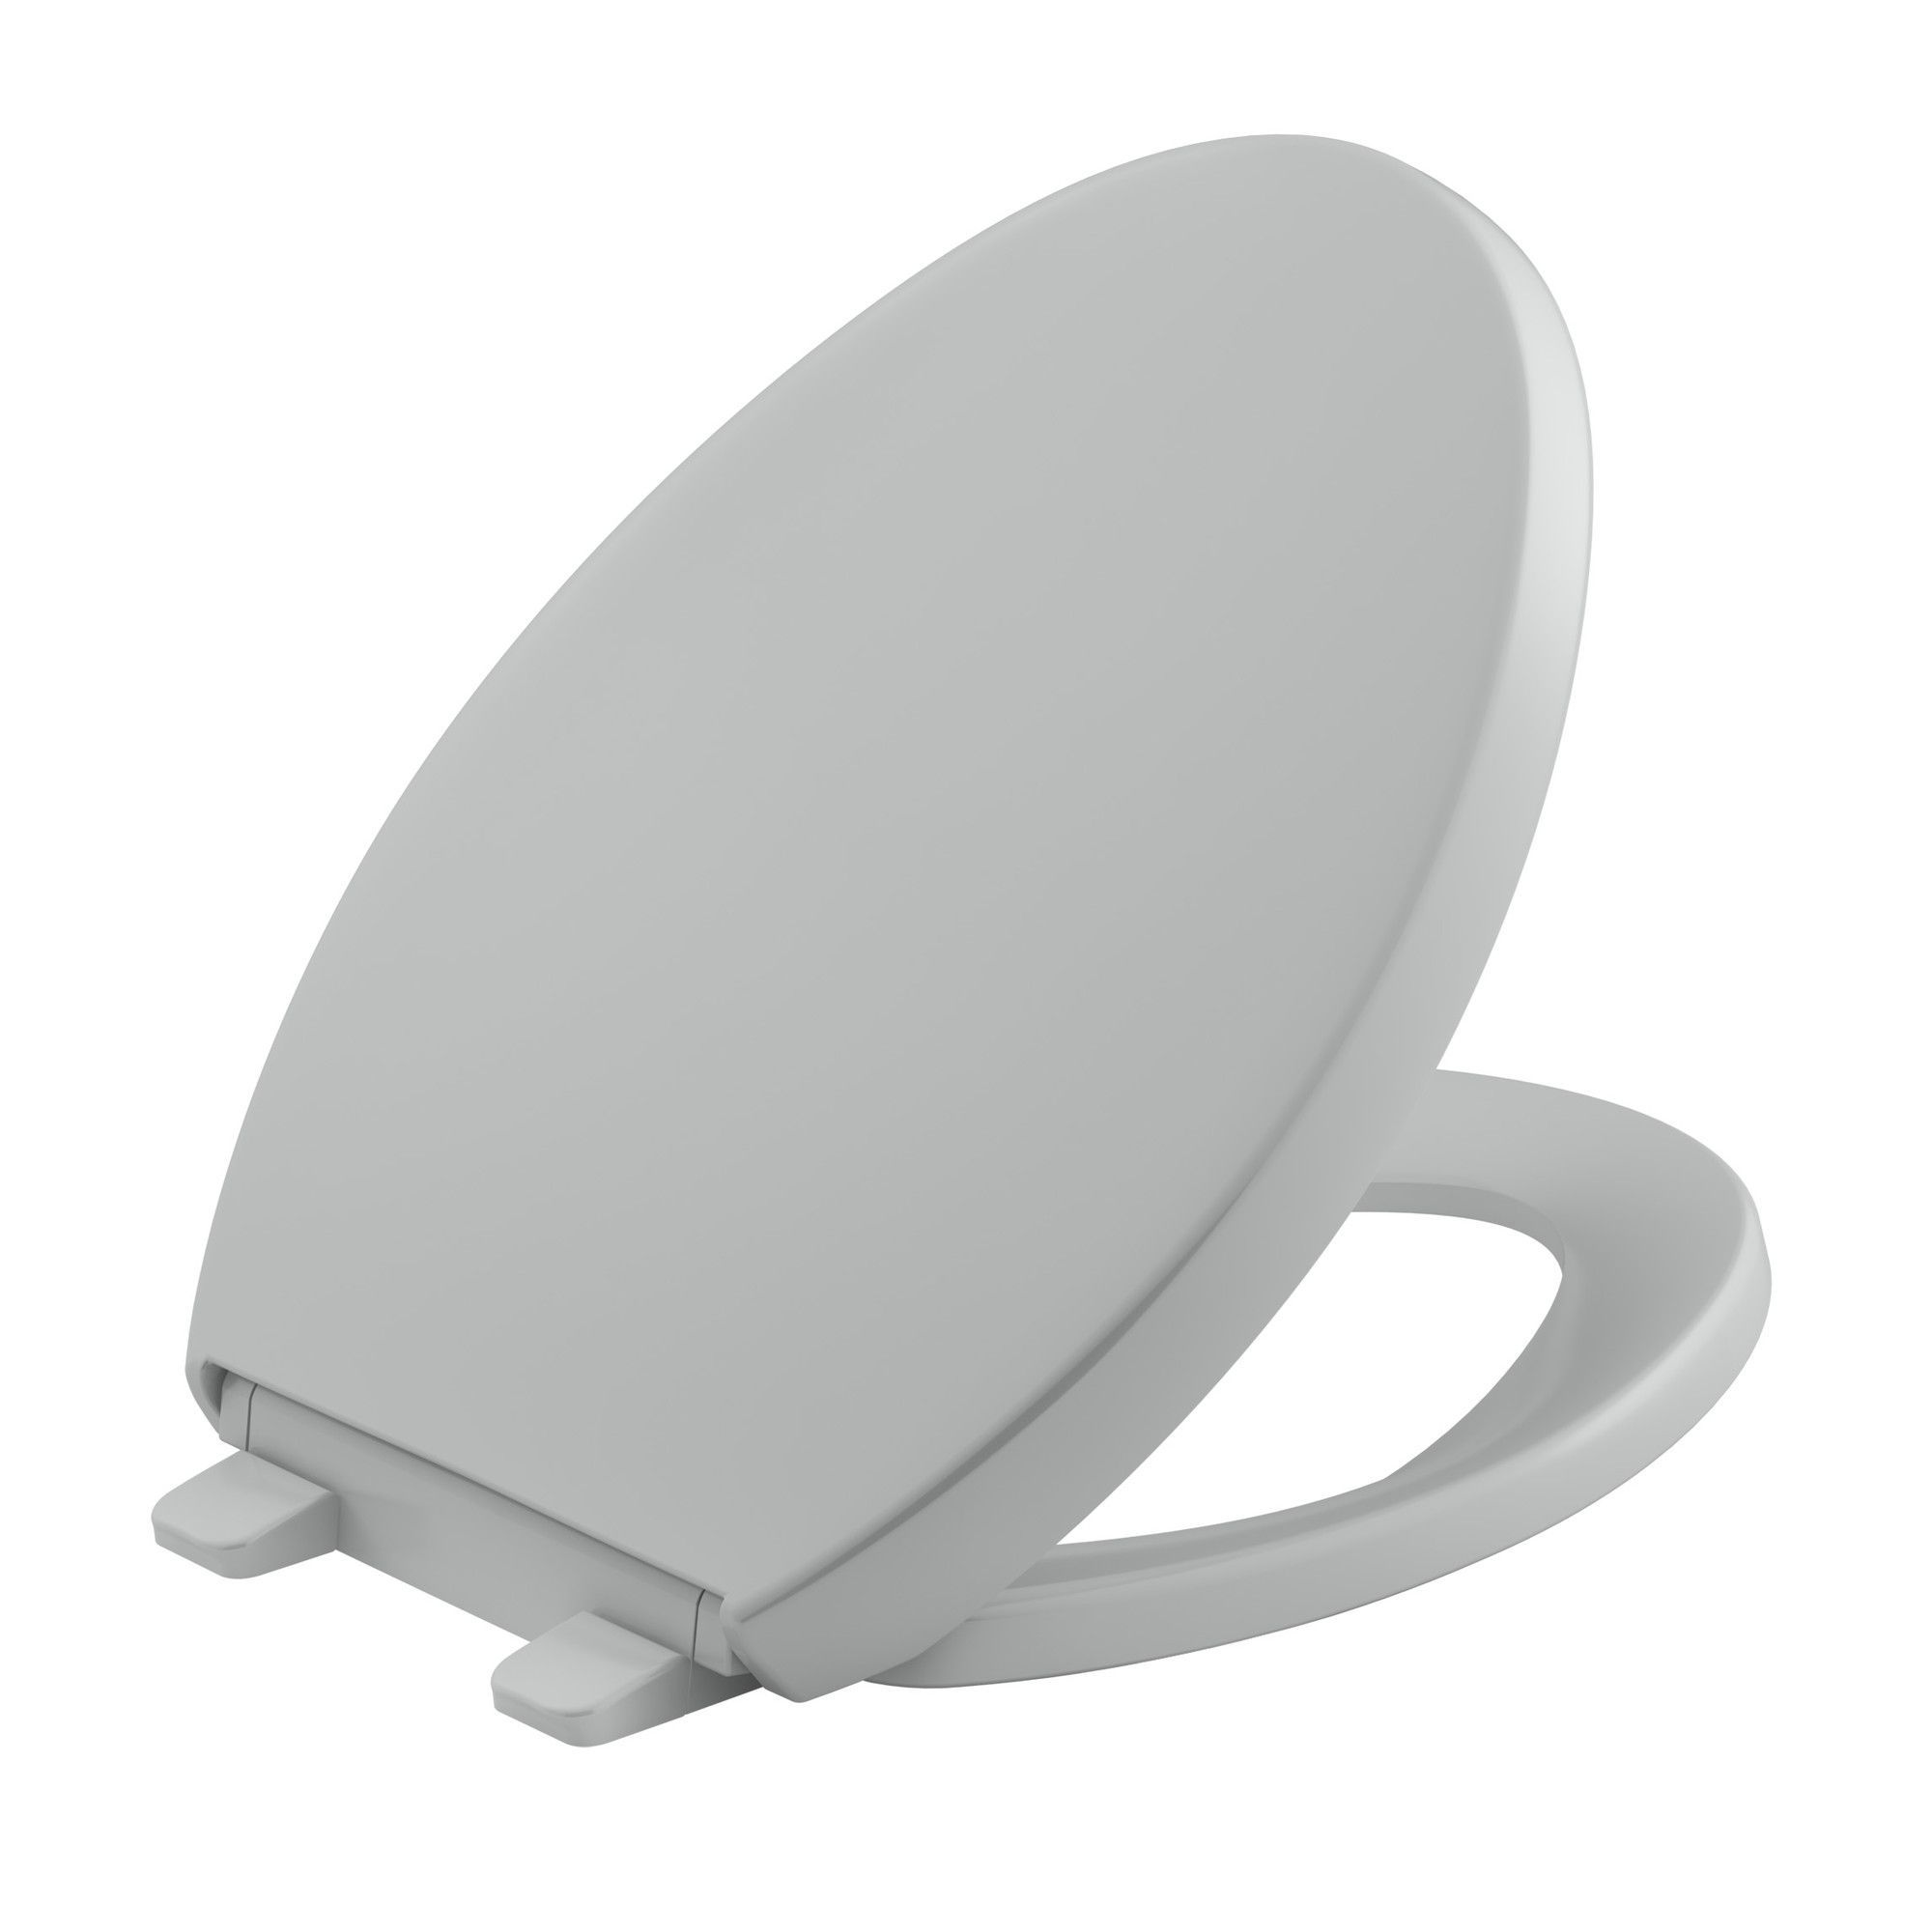 Reveal Quiet Close With Grip Tight Elongated Toilet Seat Wood Toilet Seat Plastic Hinges Bidet Toilet Seat